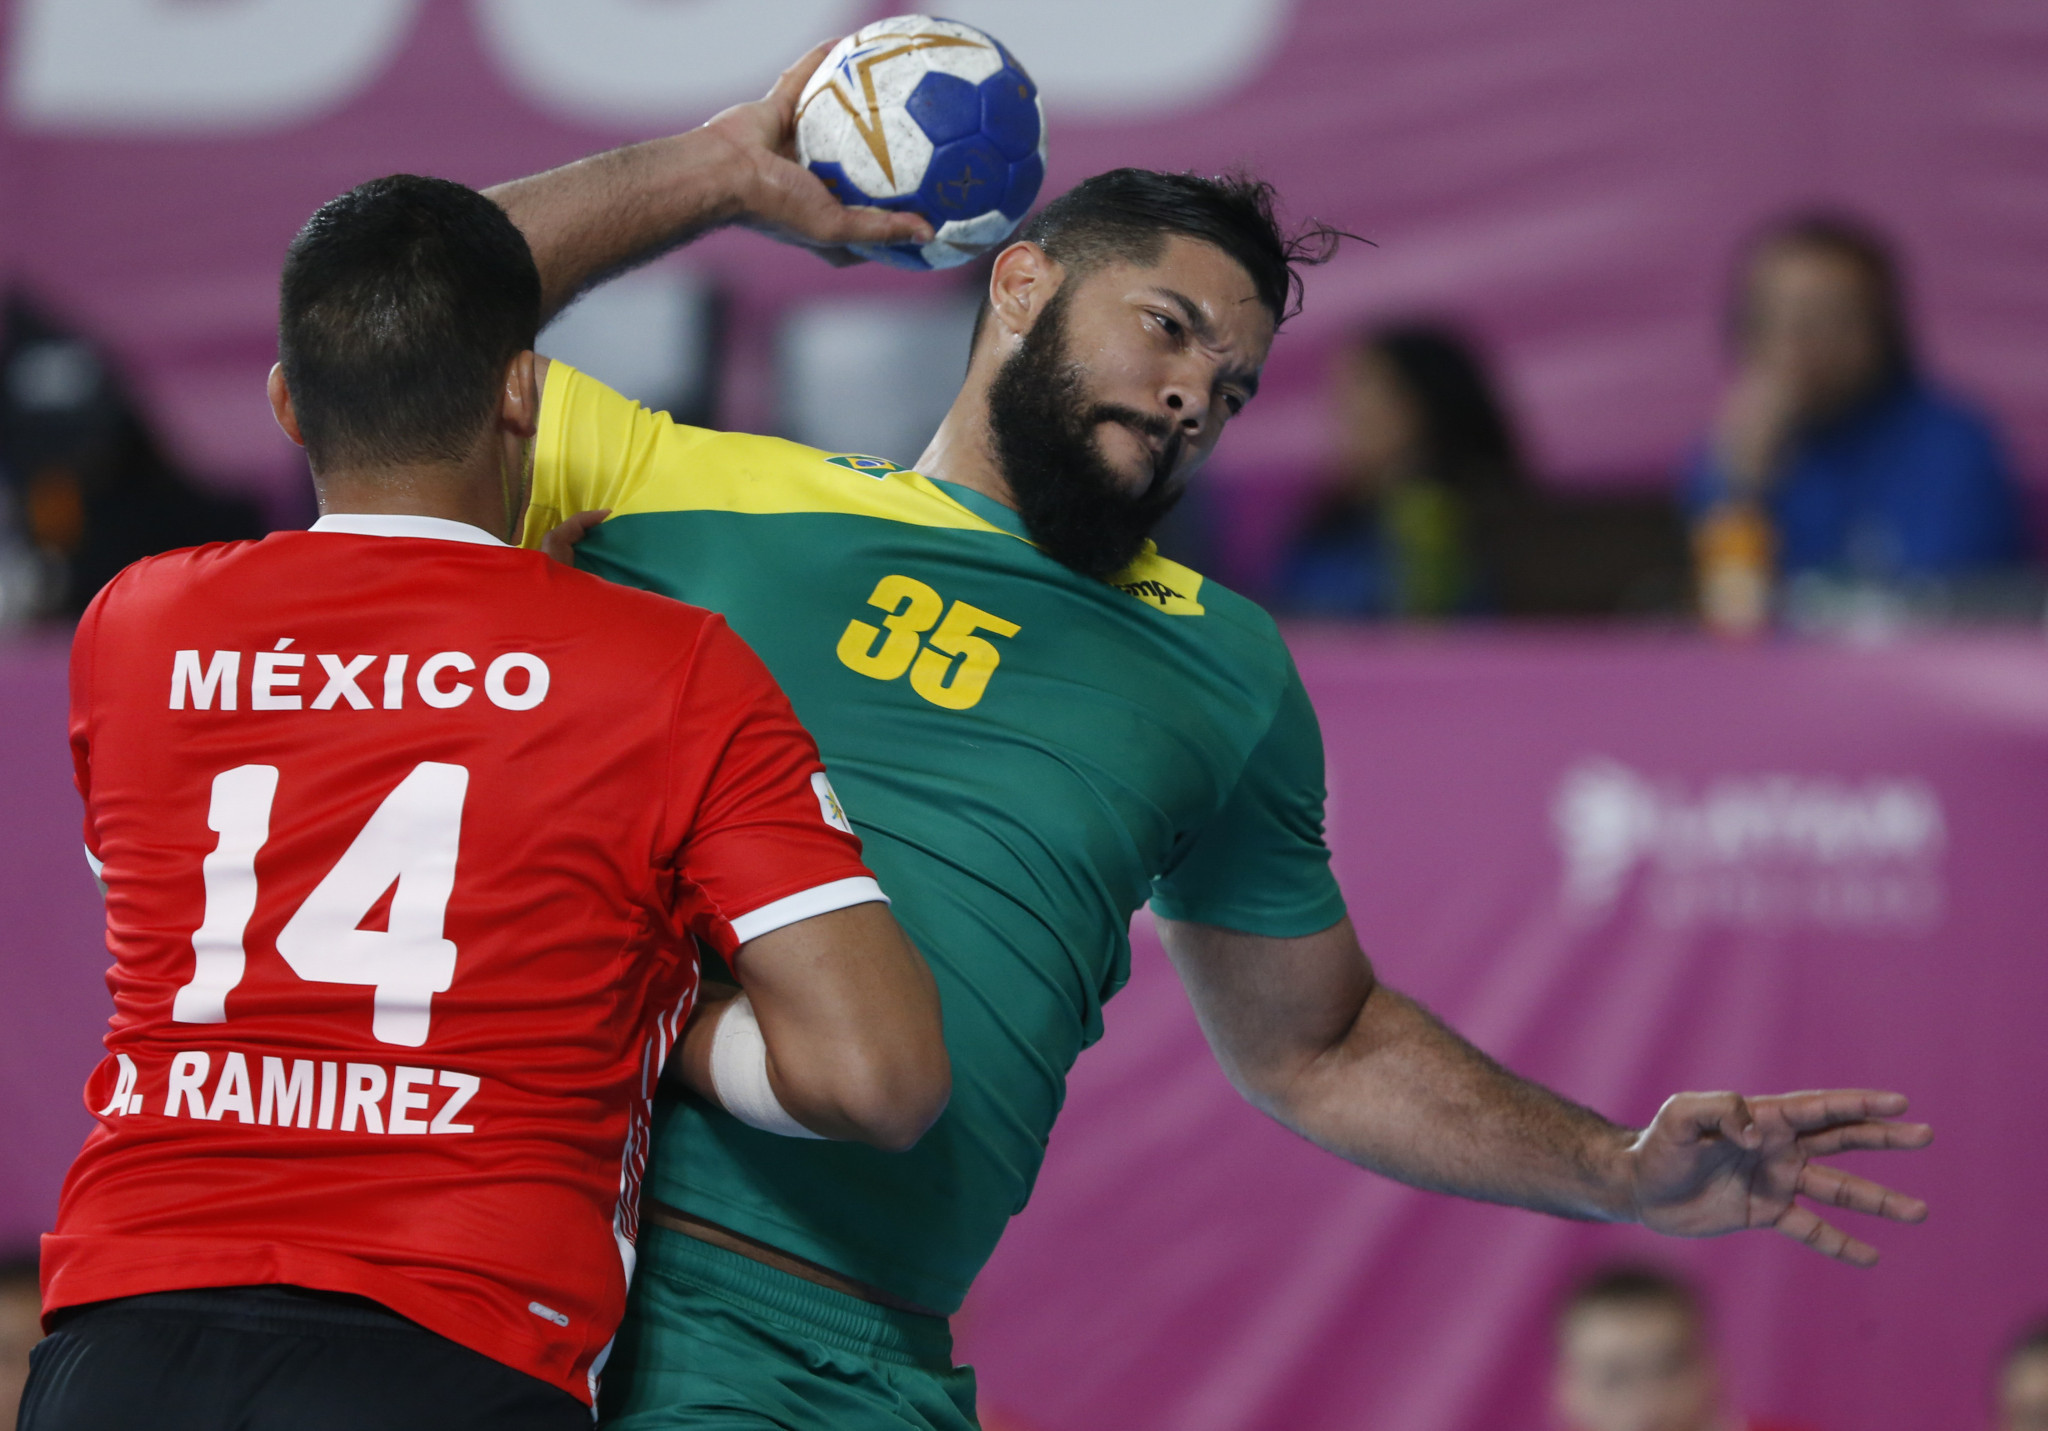 Argentina Earn Tokyo 2020 Place With Narrow Handball Victory